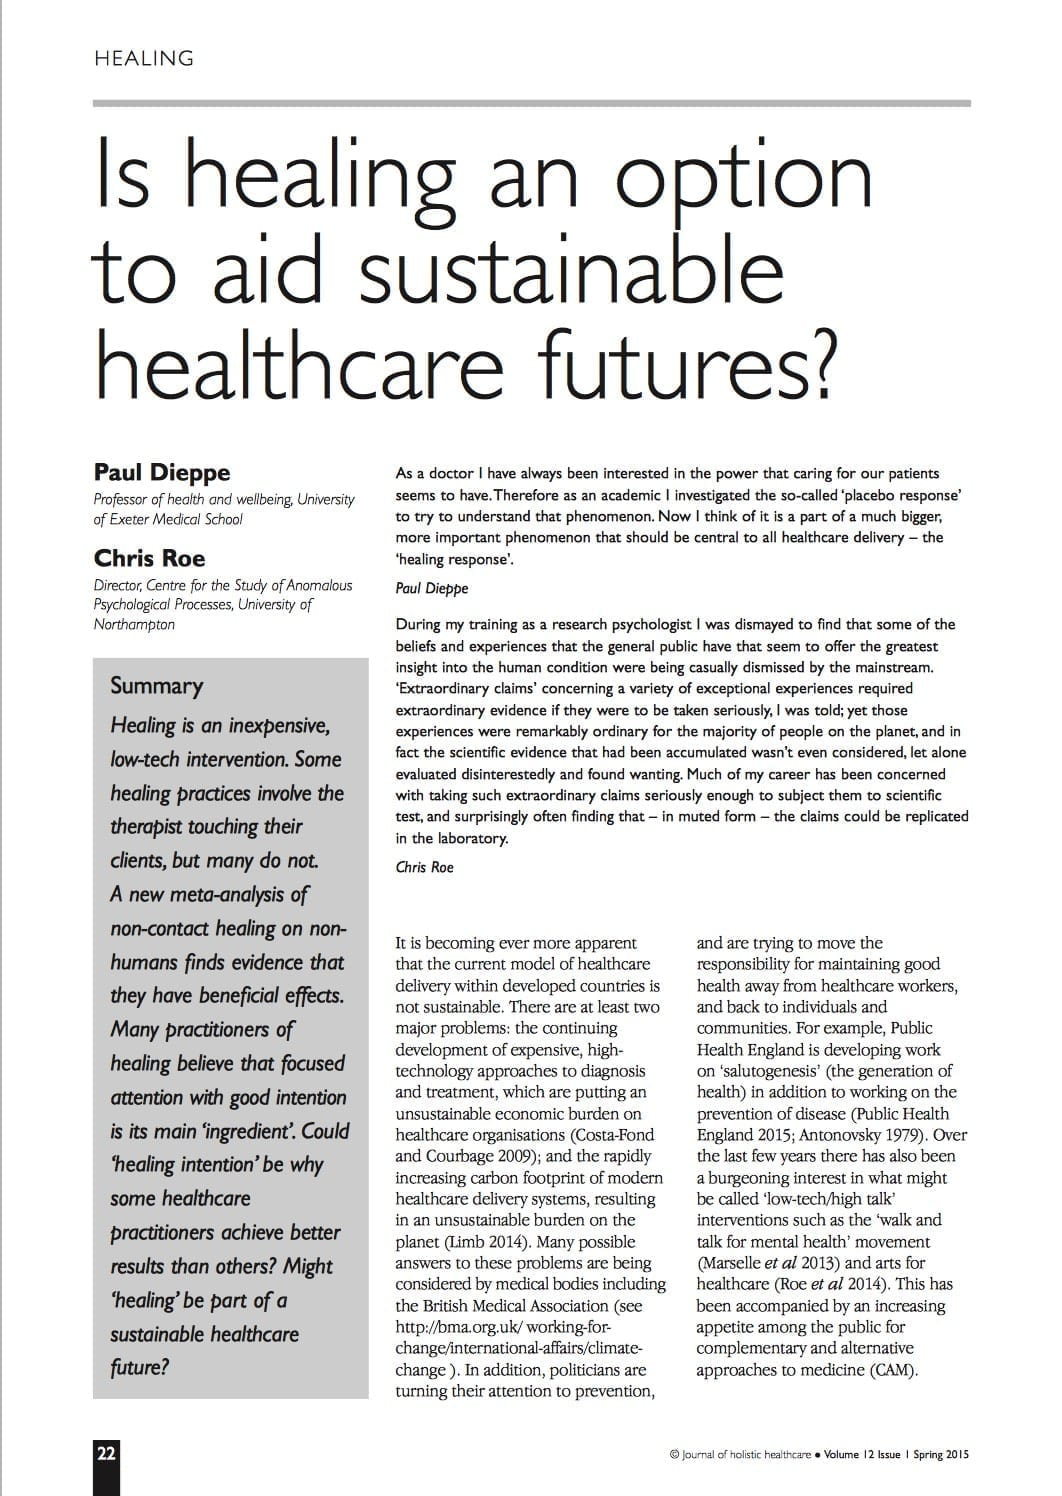 12.1.5 is healing an option to aid sustainable healthcare futures